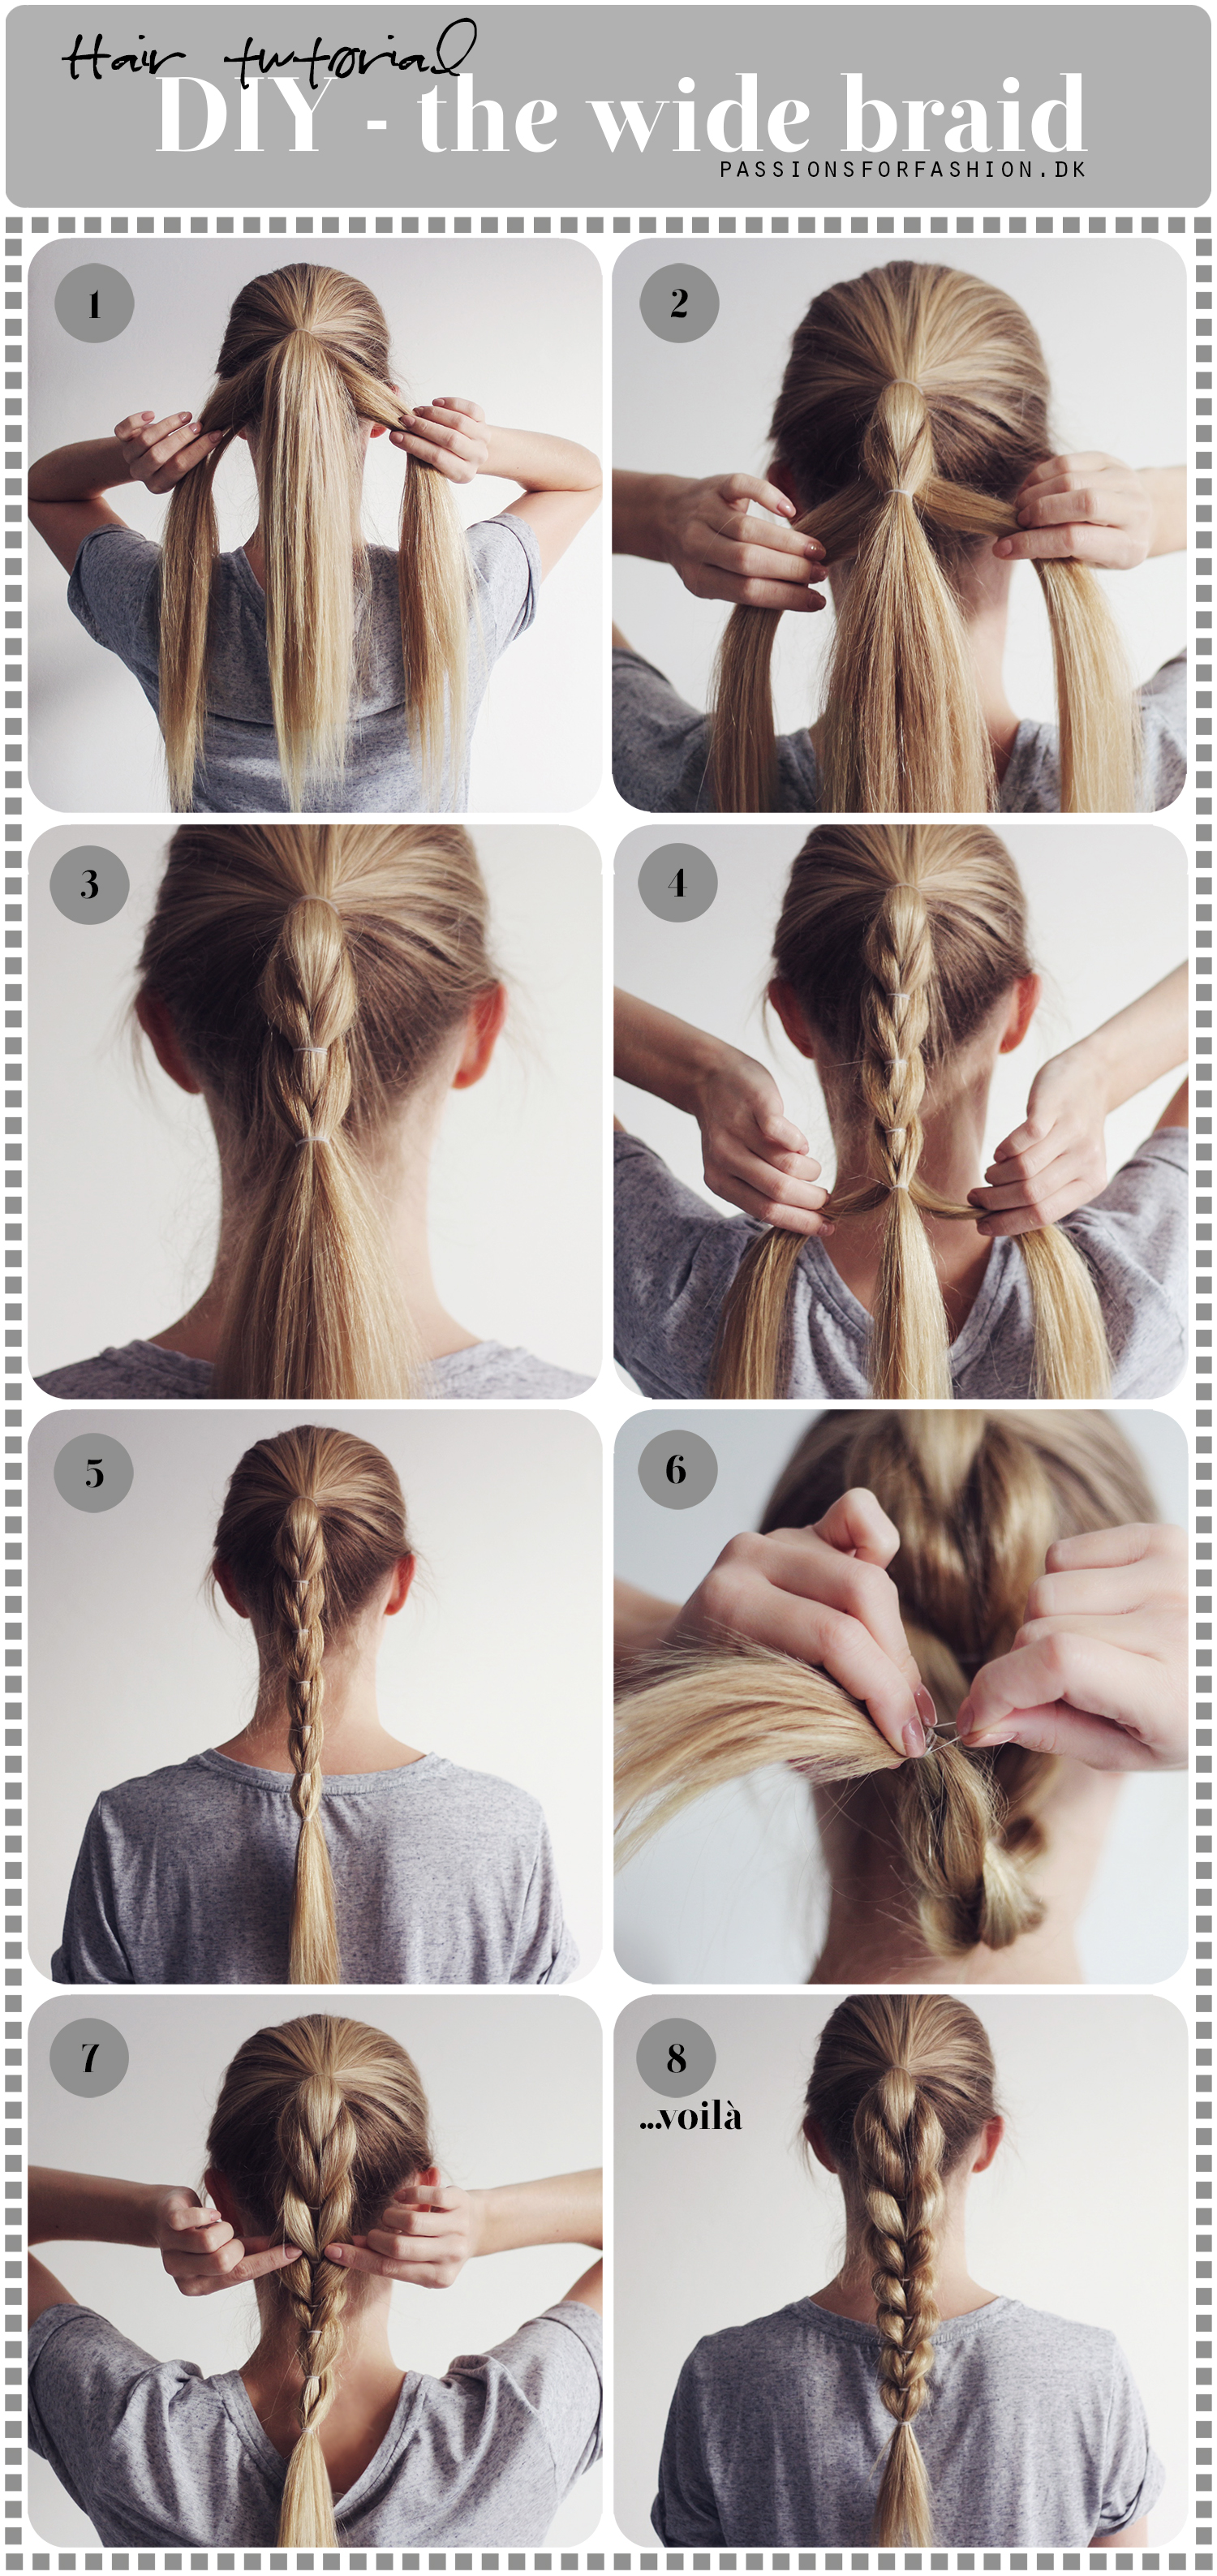 hårguide,-frisure,-fletning,-hair-tutorial@2x